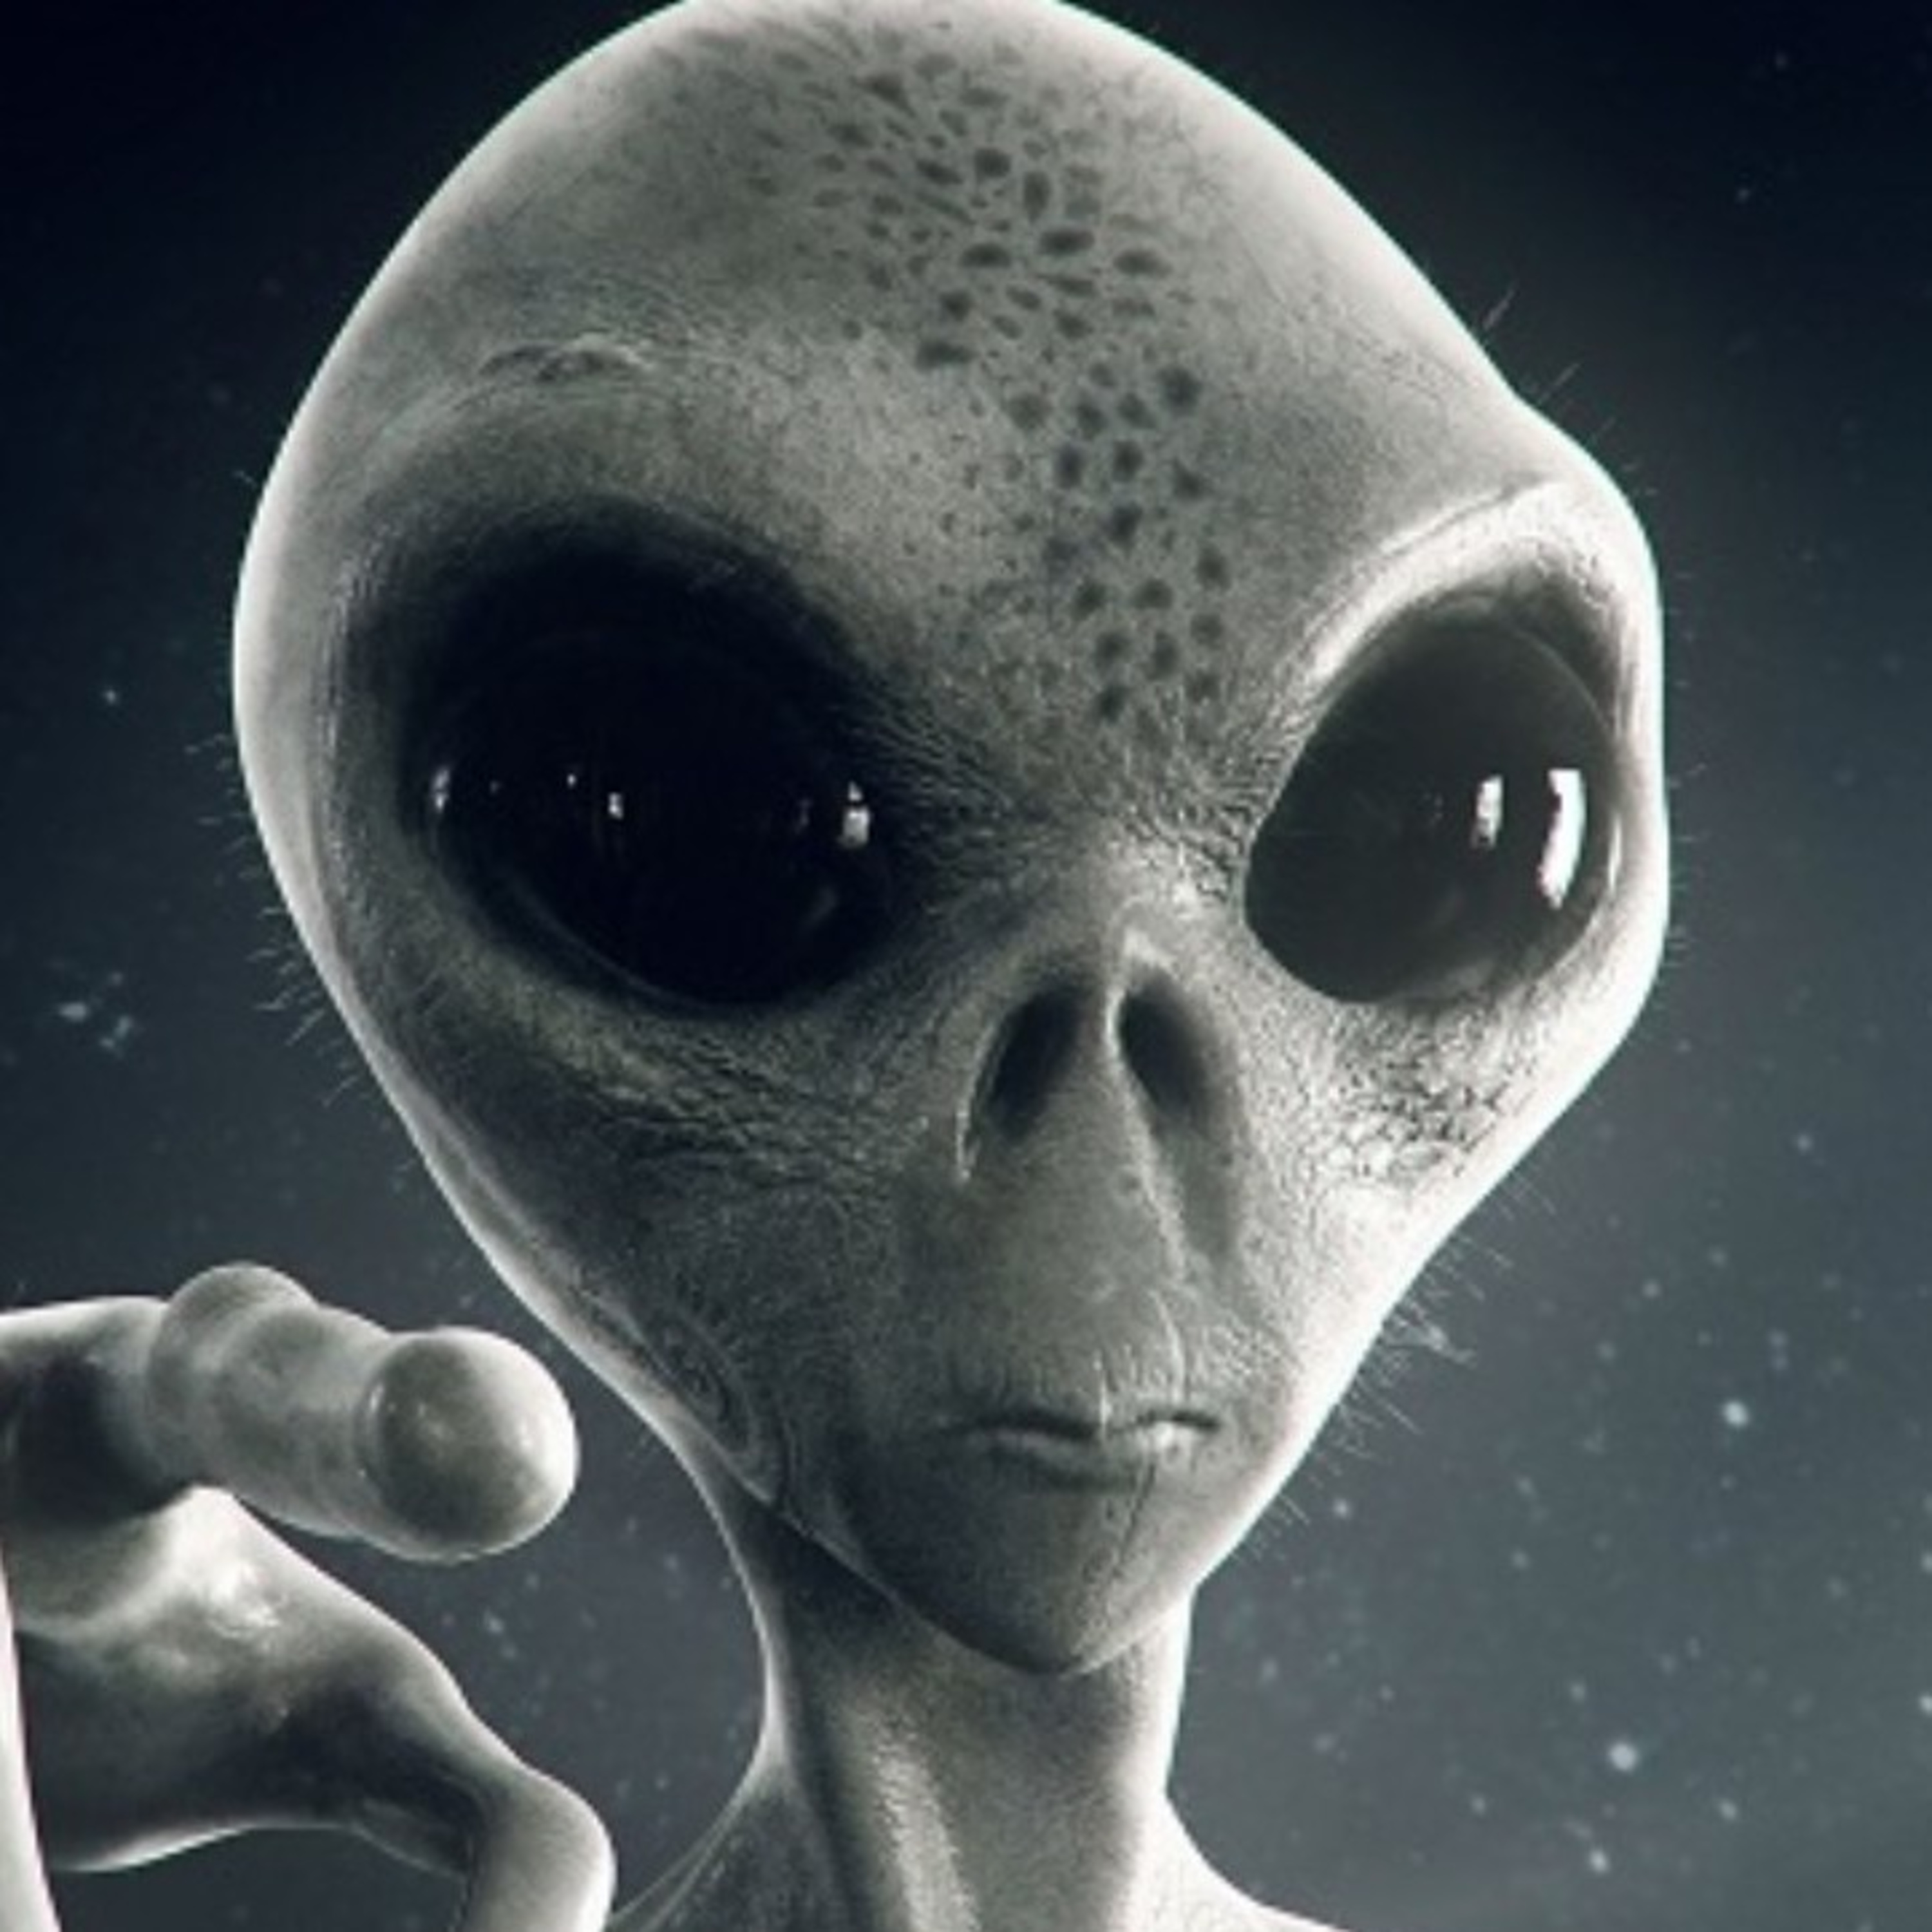 Aliens, government mind control and other Conspiracy theories?